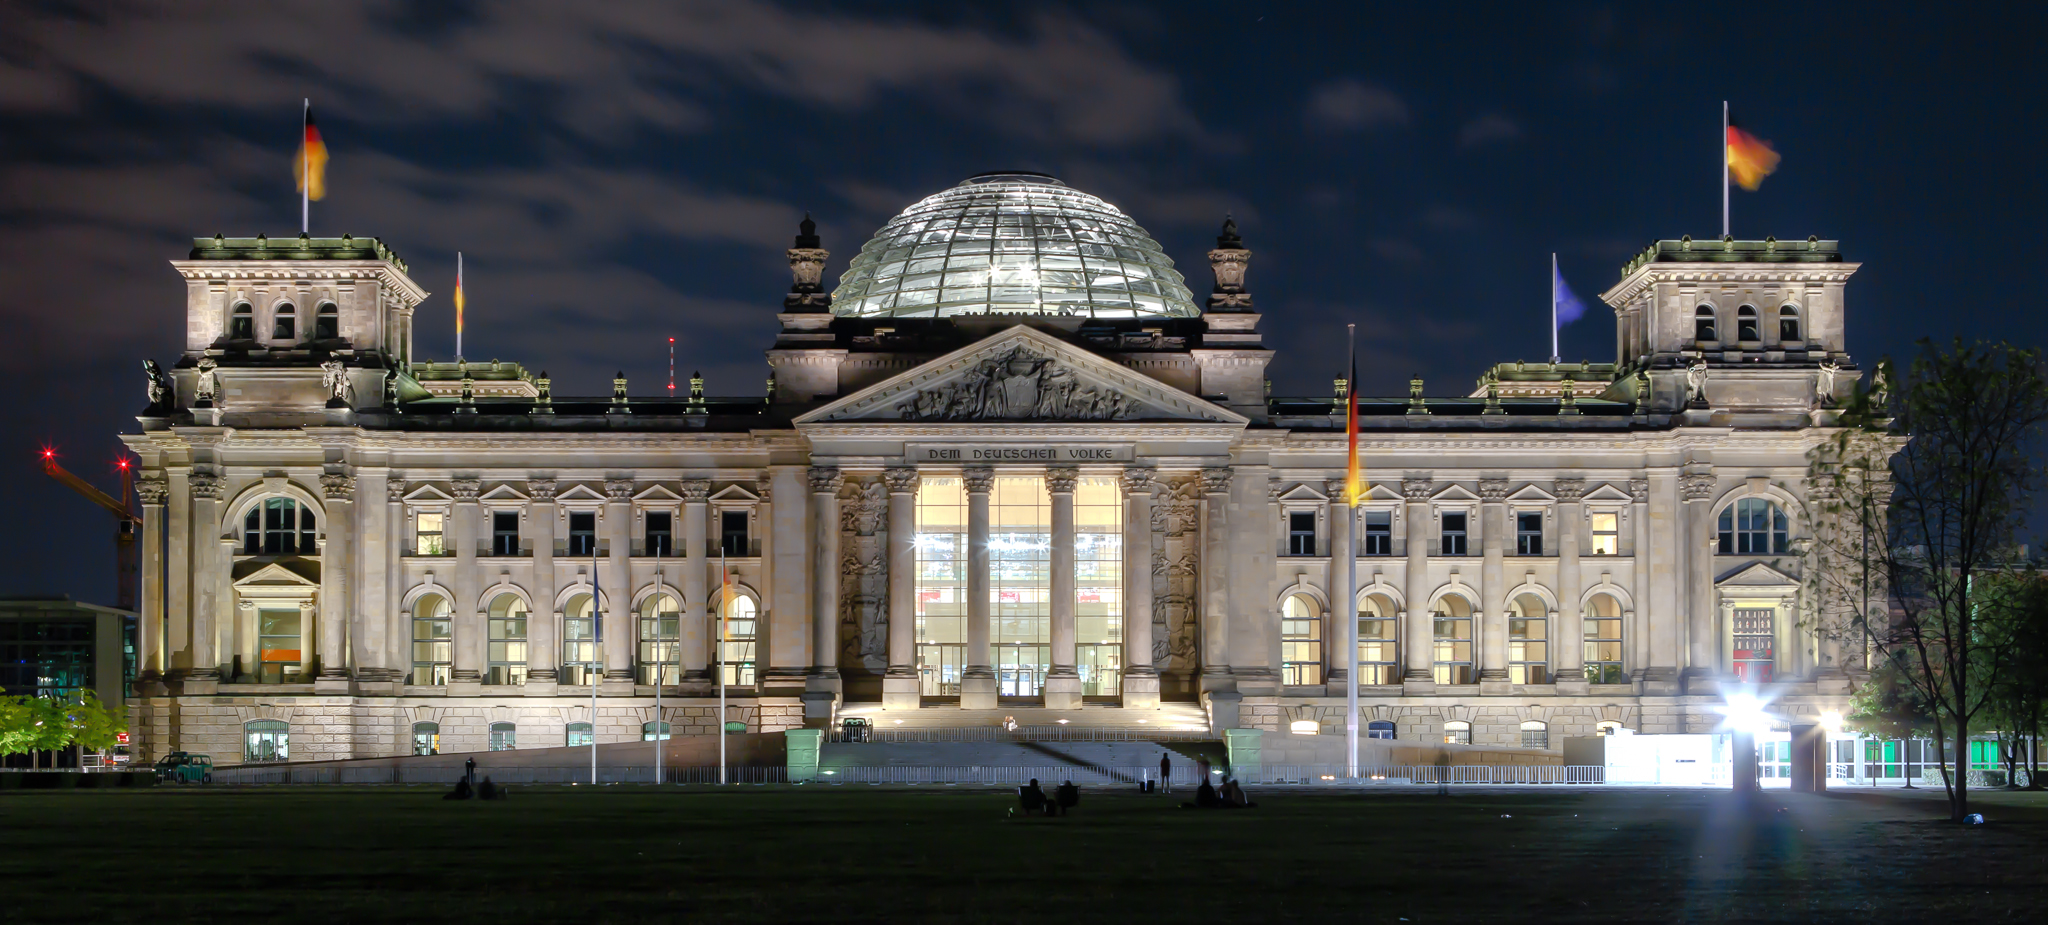 reichstag at berlin city - photo #36